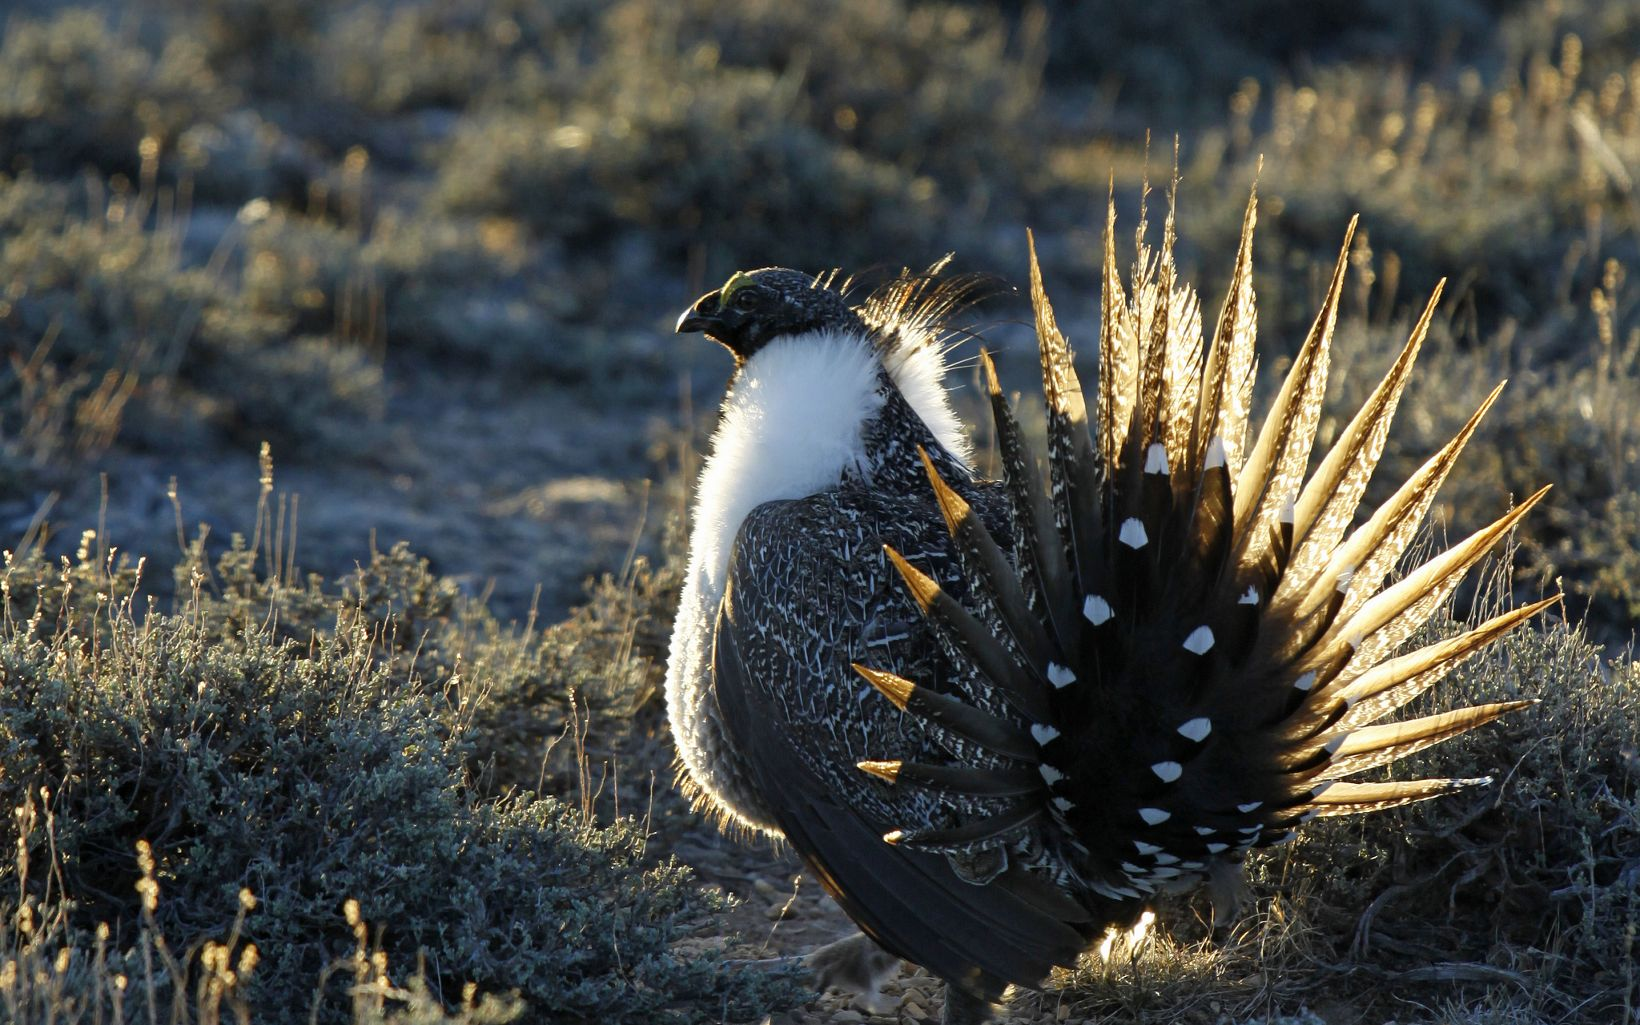 A Greater Sage-Grouse (Centrocercus urophasianus) in Wyoming.